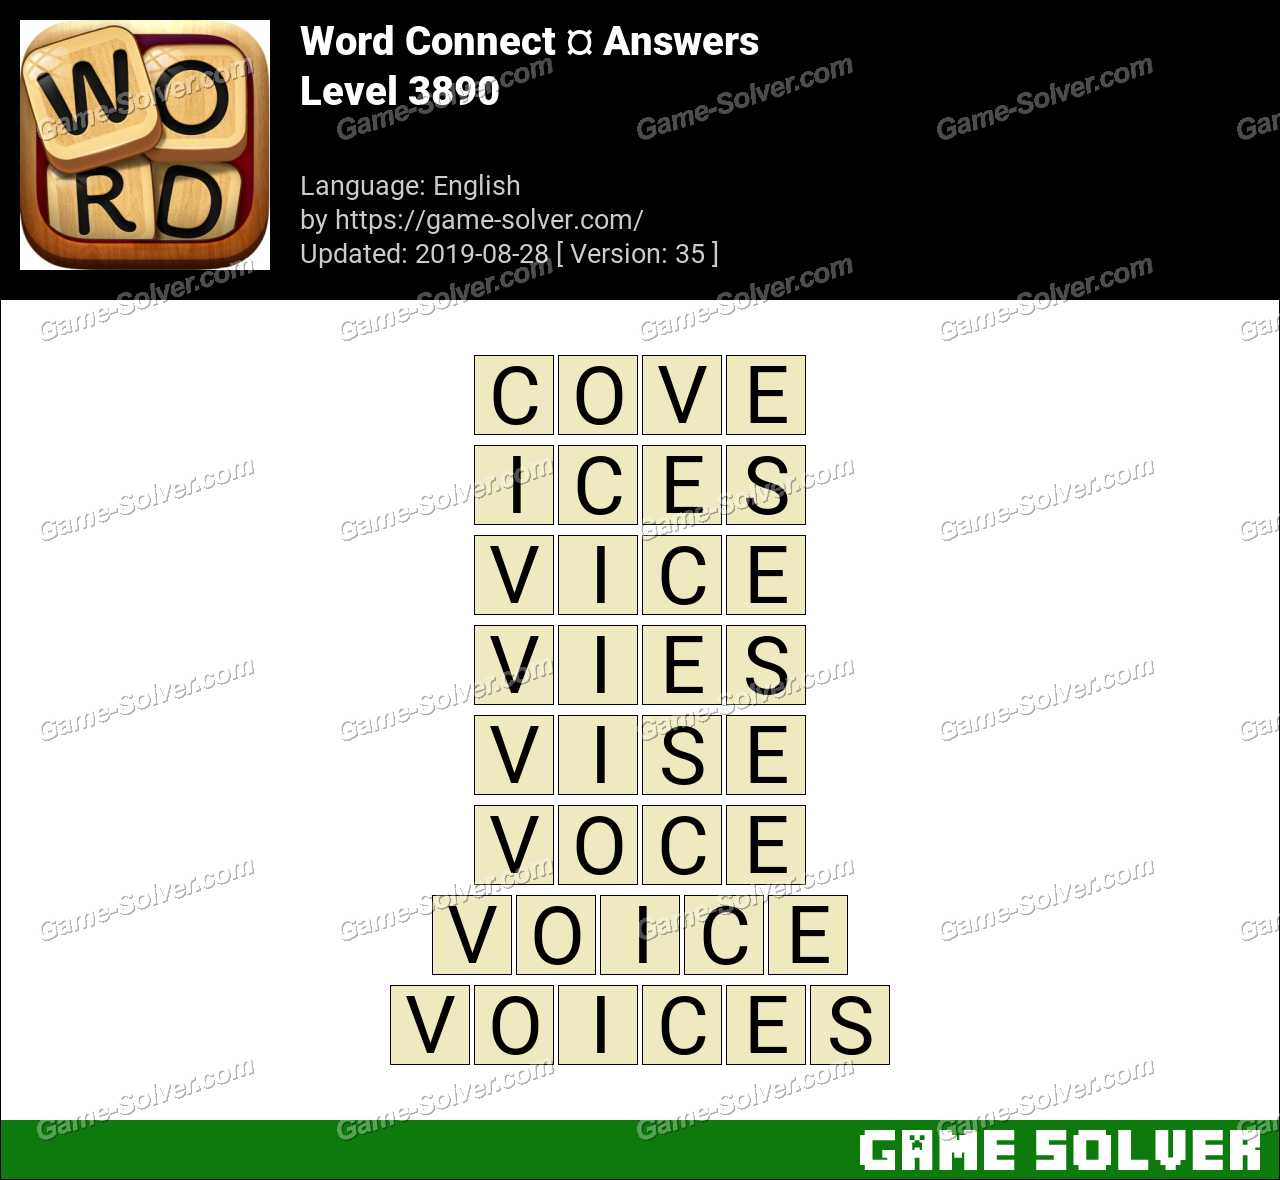 Word Connect Level 3890 Answers